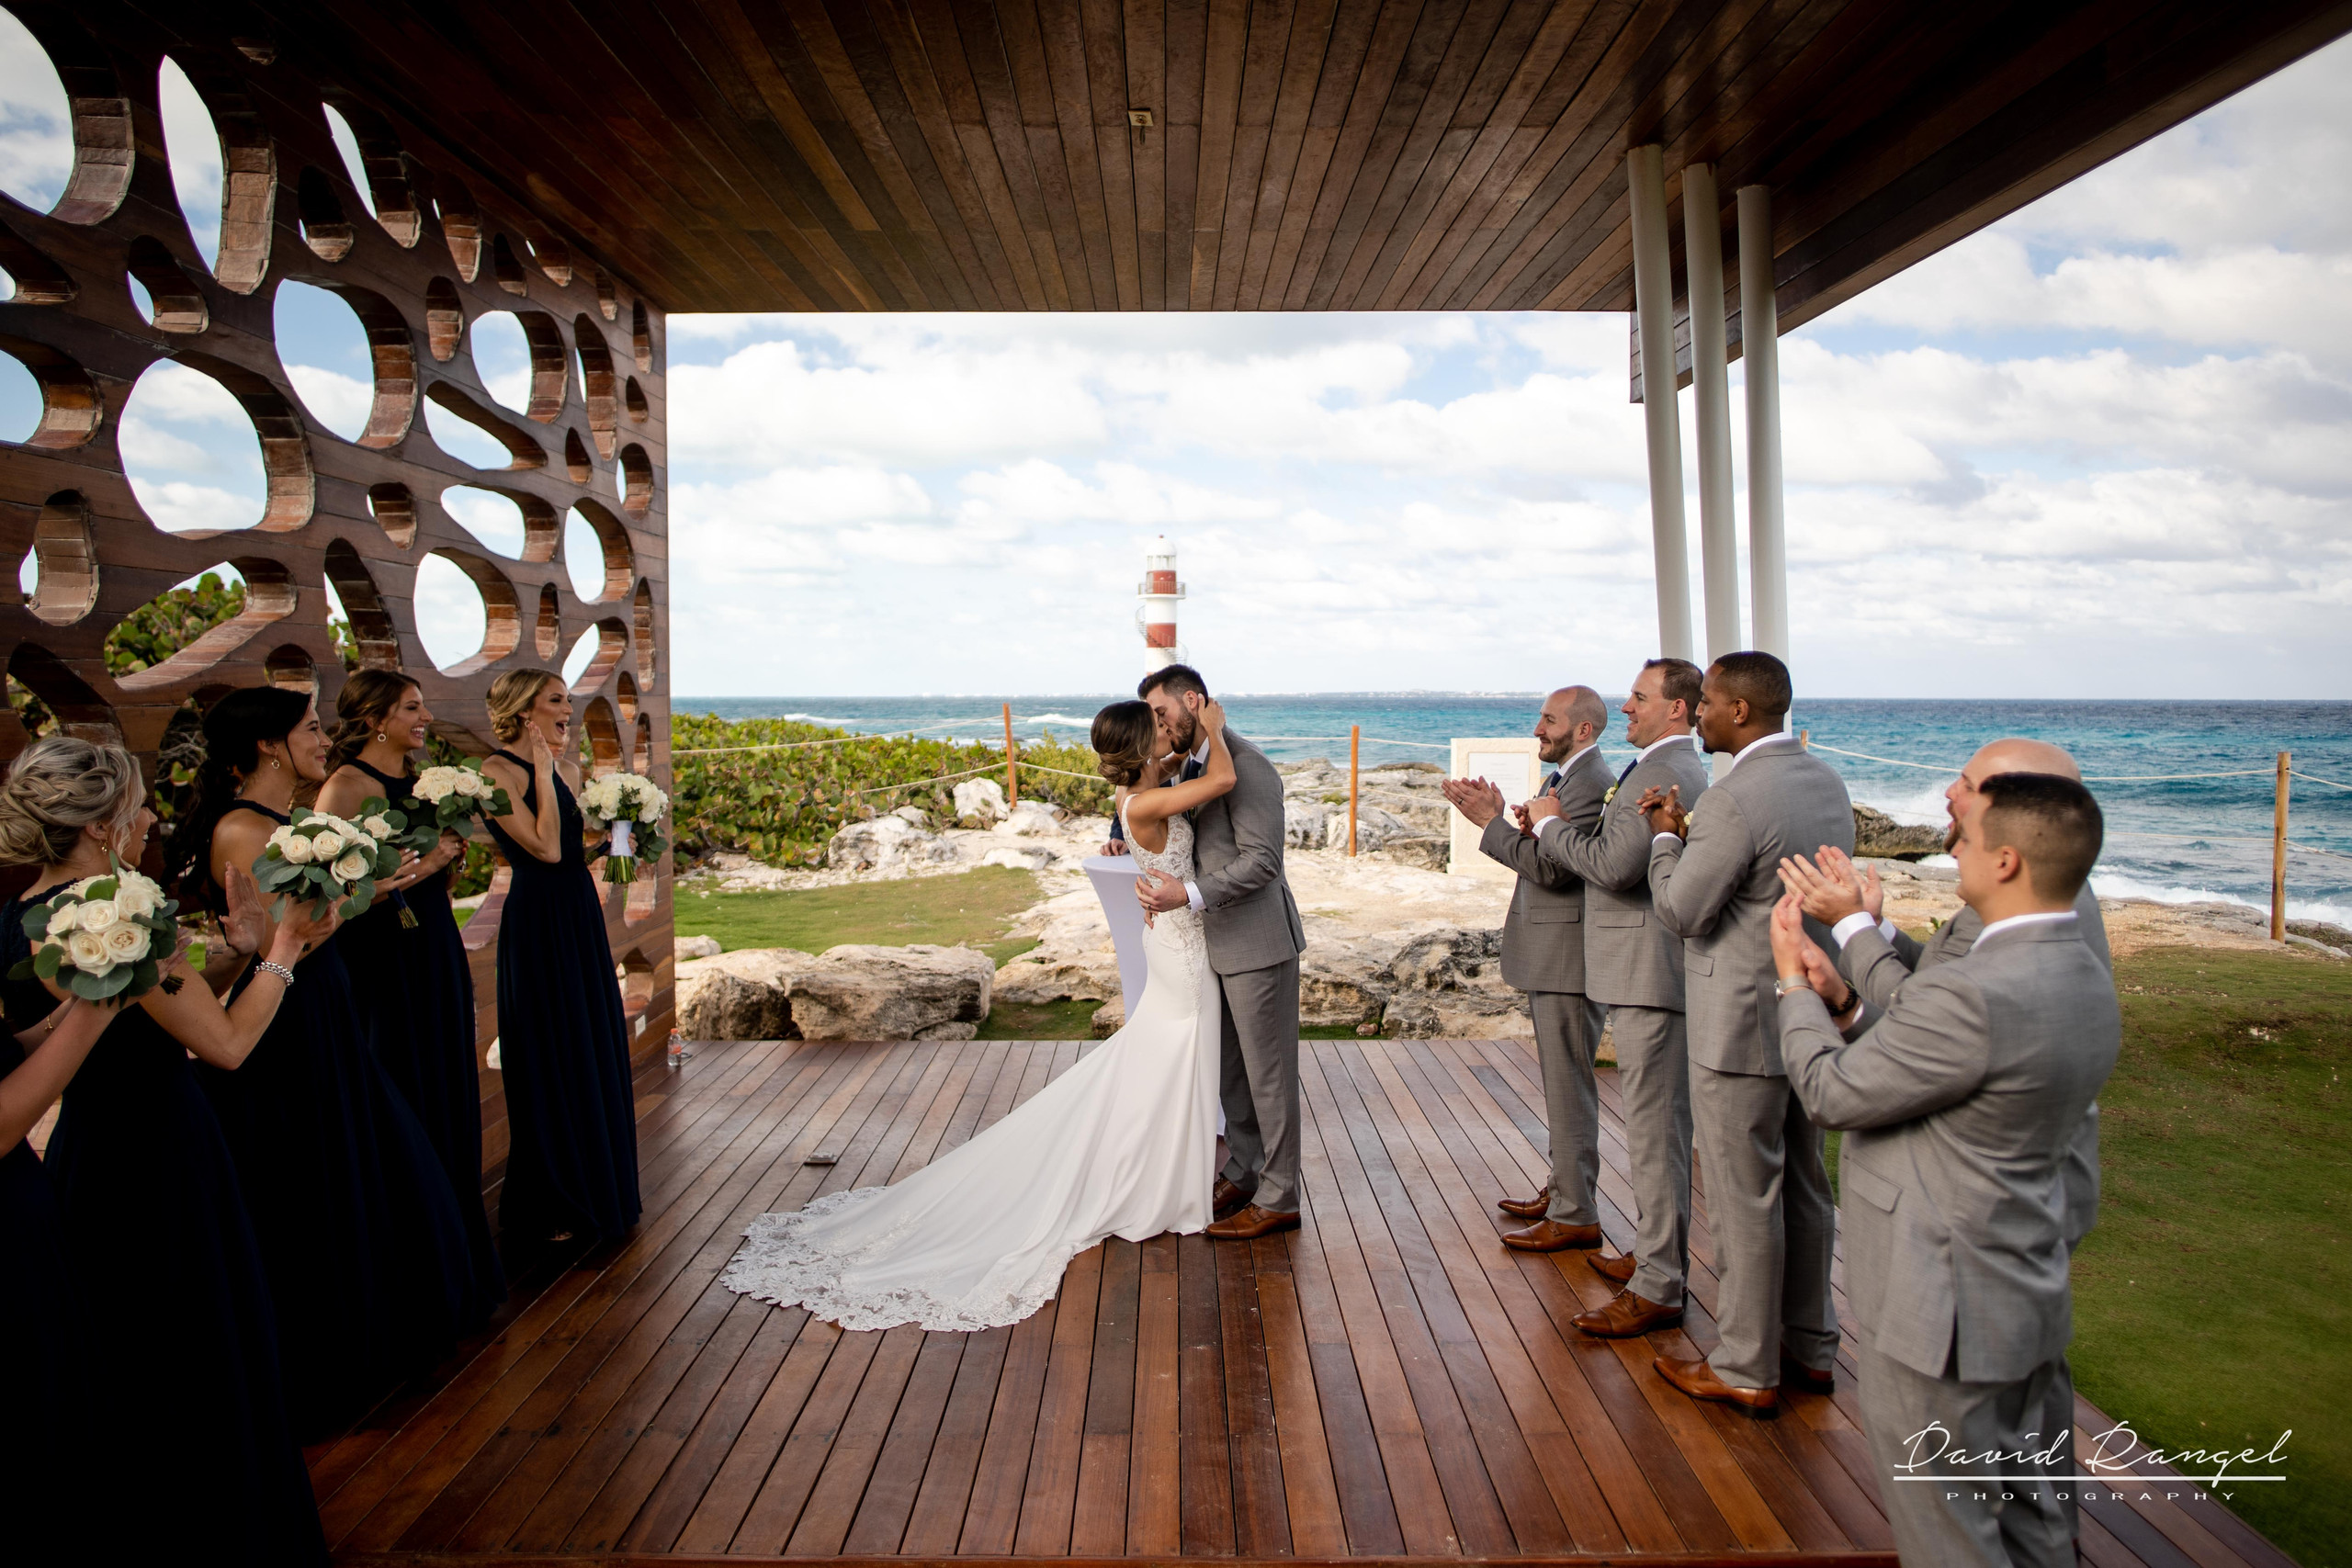 kiss+bride+groom+ceremony+happy+lighthouse+gazebo+wedding+ceremony+photo